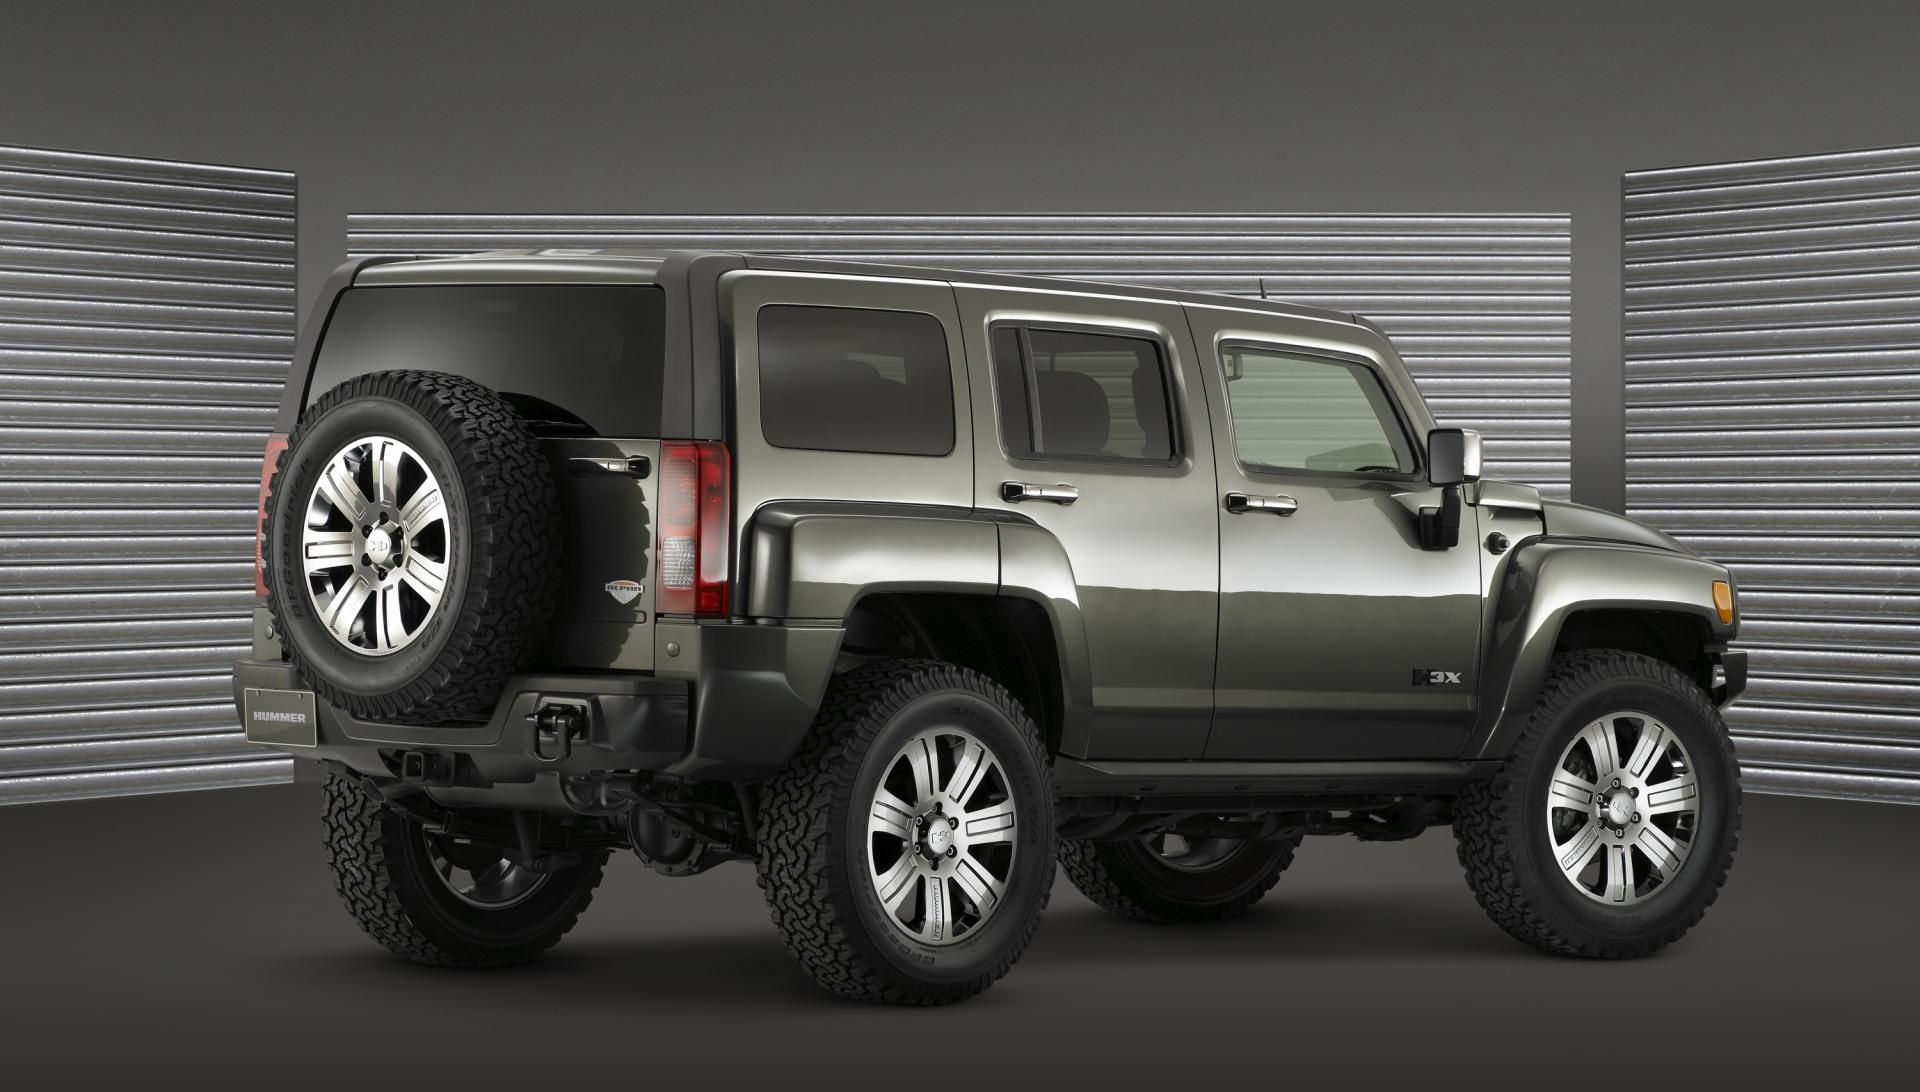 Dodge Muscle Car Wallpapers 2009 Hummer H3 X Concept News And Information Research